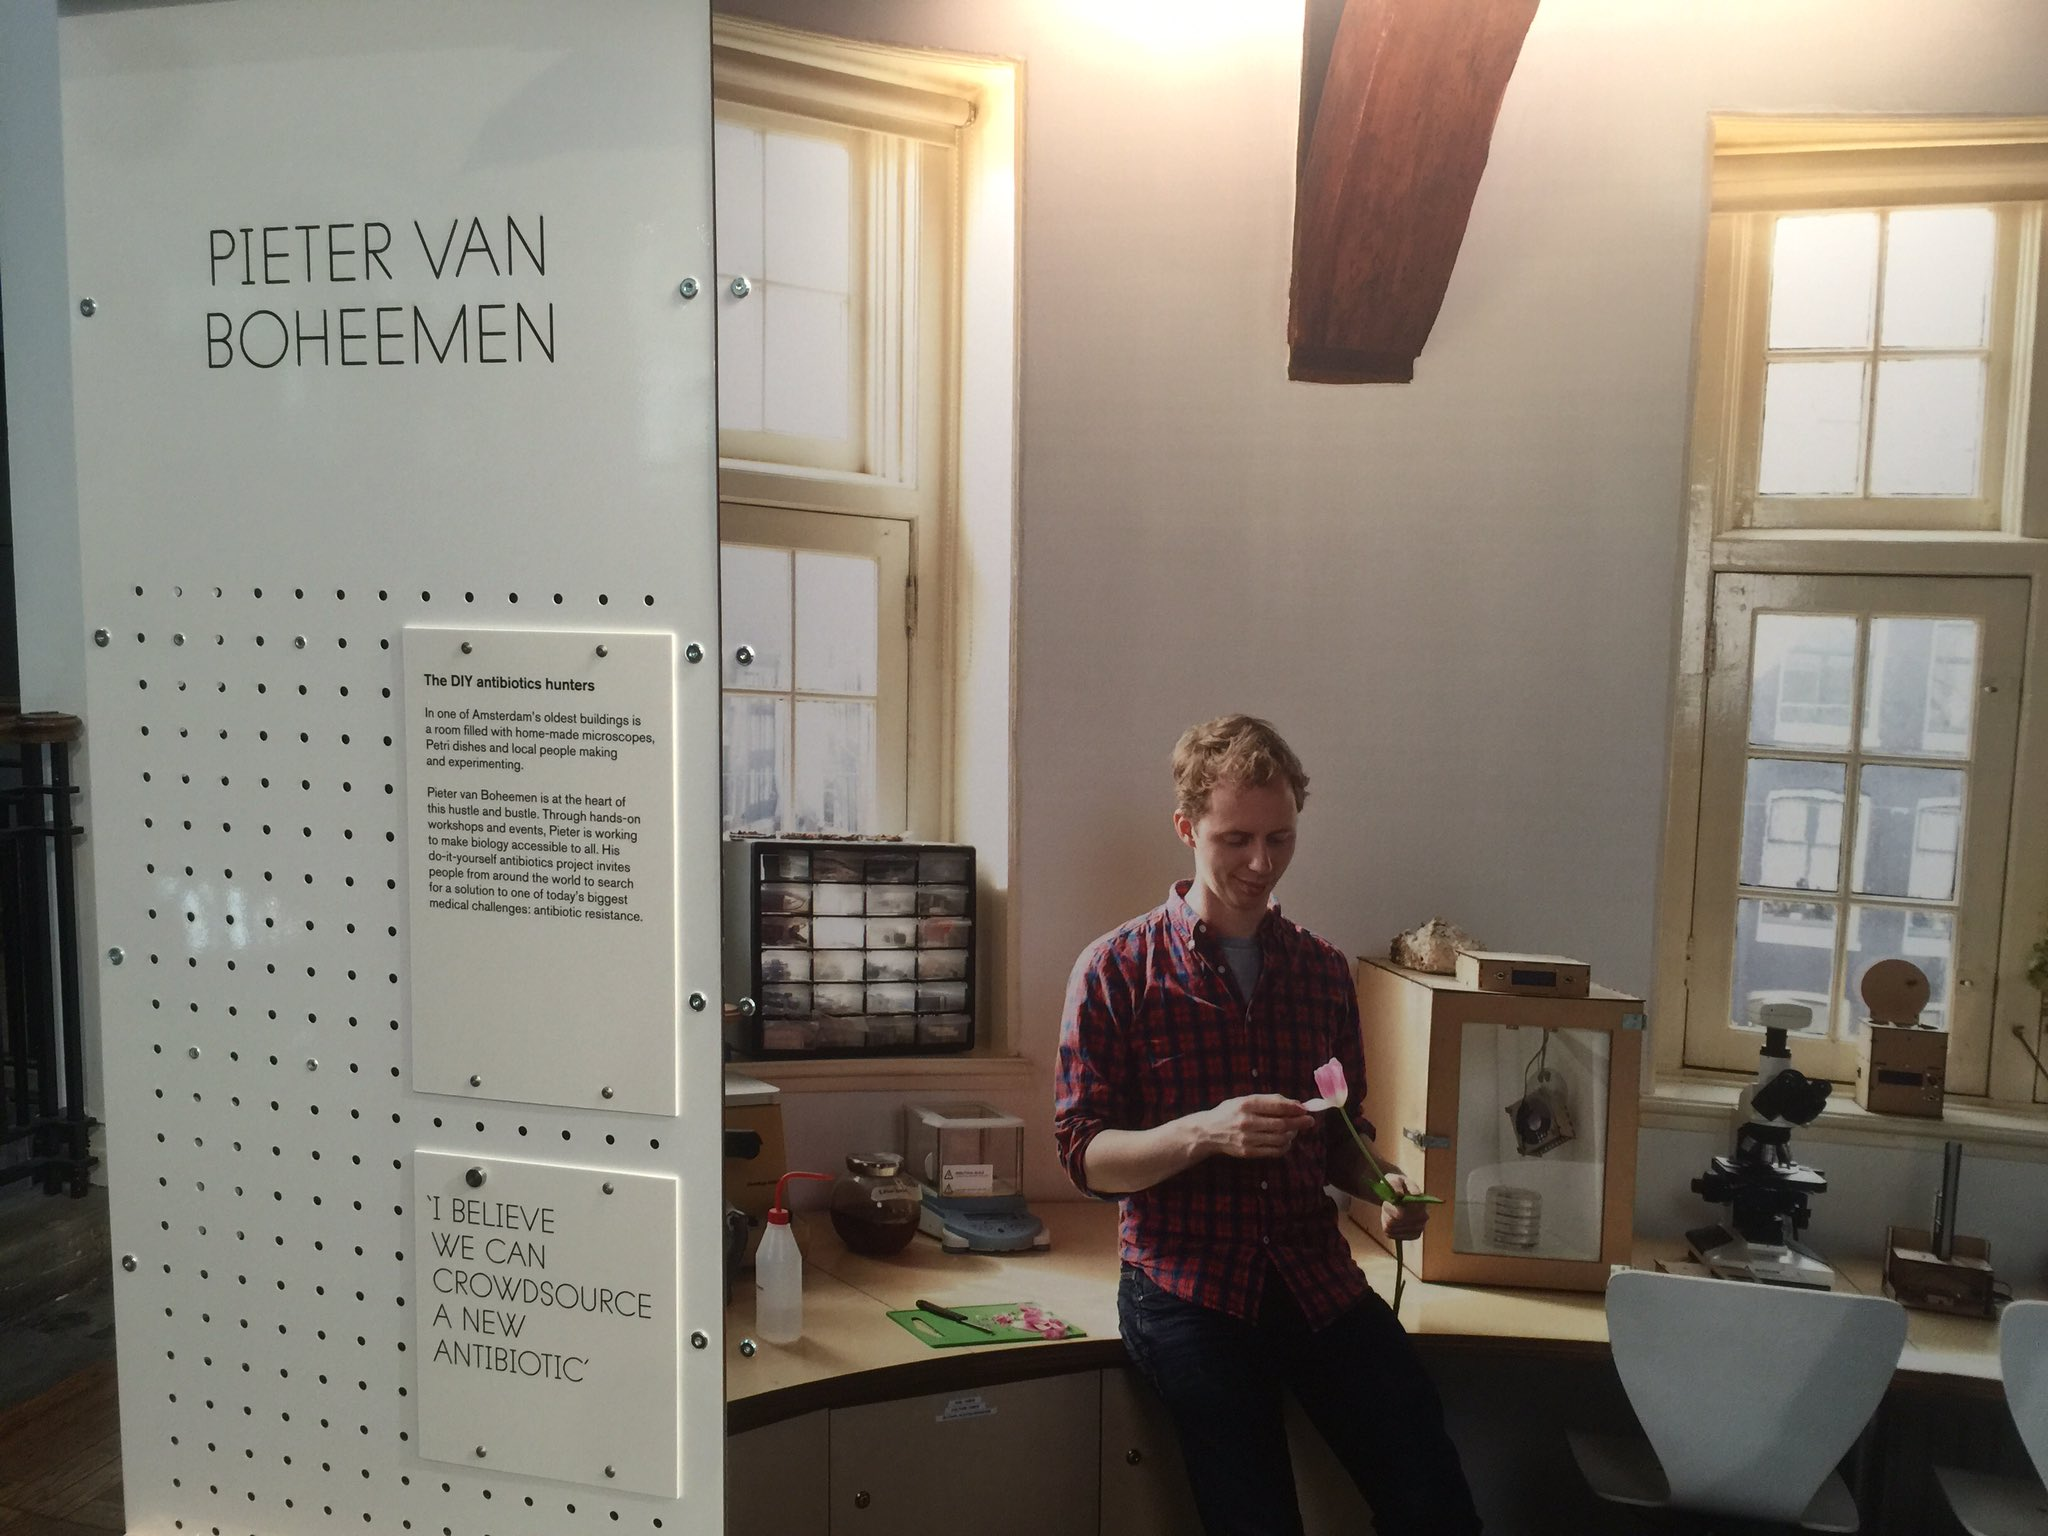 ".@pietervboheemen IS ""the DIY antibiotics hunter"" at @sparks_eu @sciencemuseum ""beyond the lab"" @waag https://t.co/94cjzBcZi2"